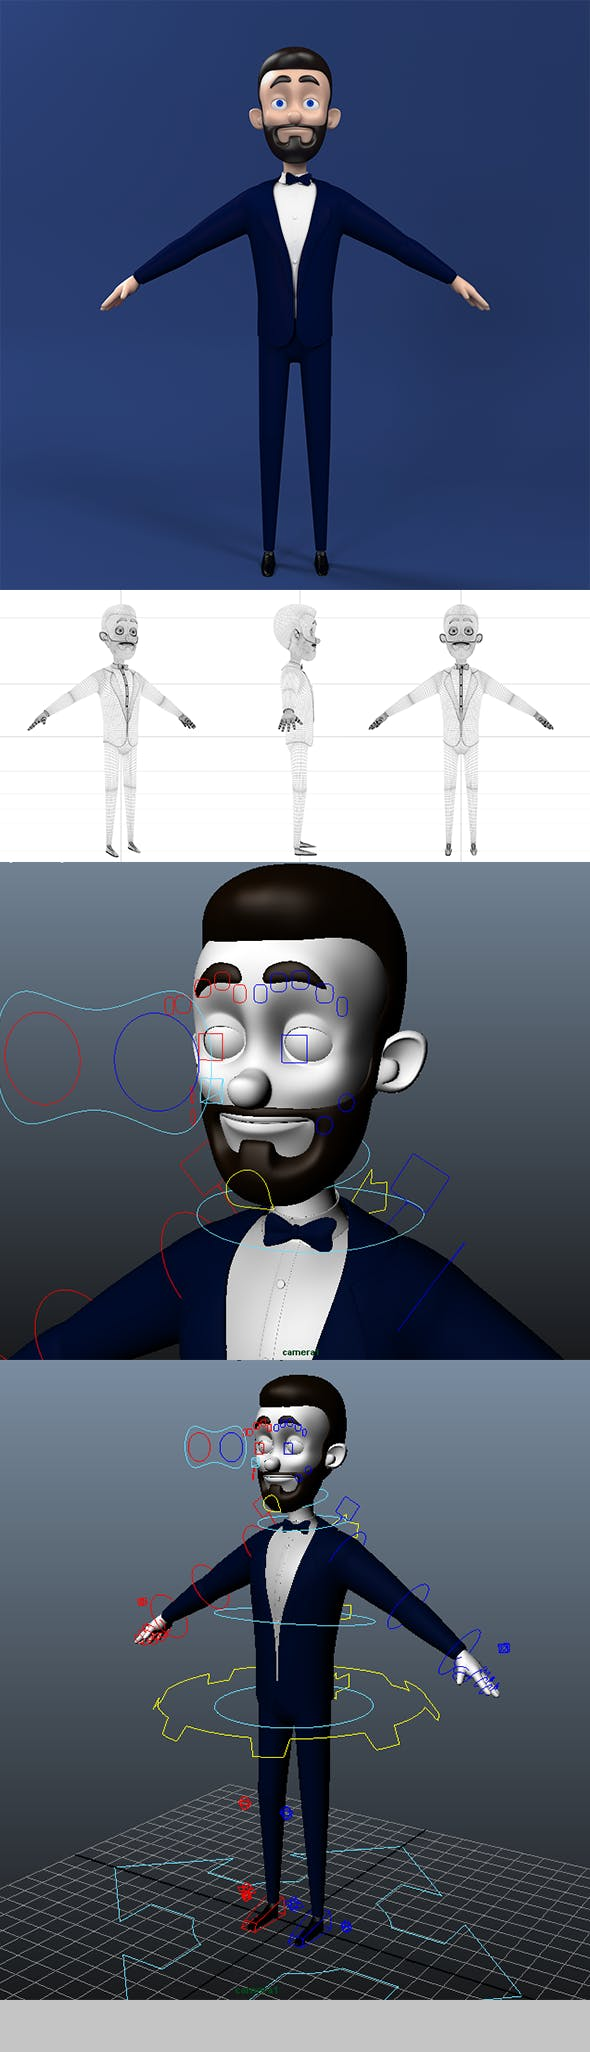 Josh Character Rigged - 3DOcean Item for Sale